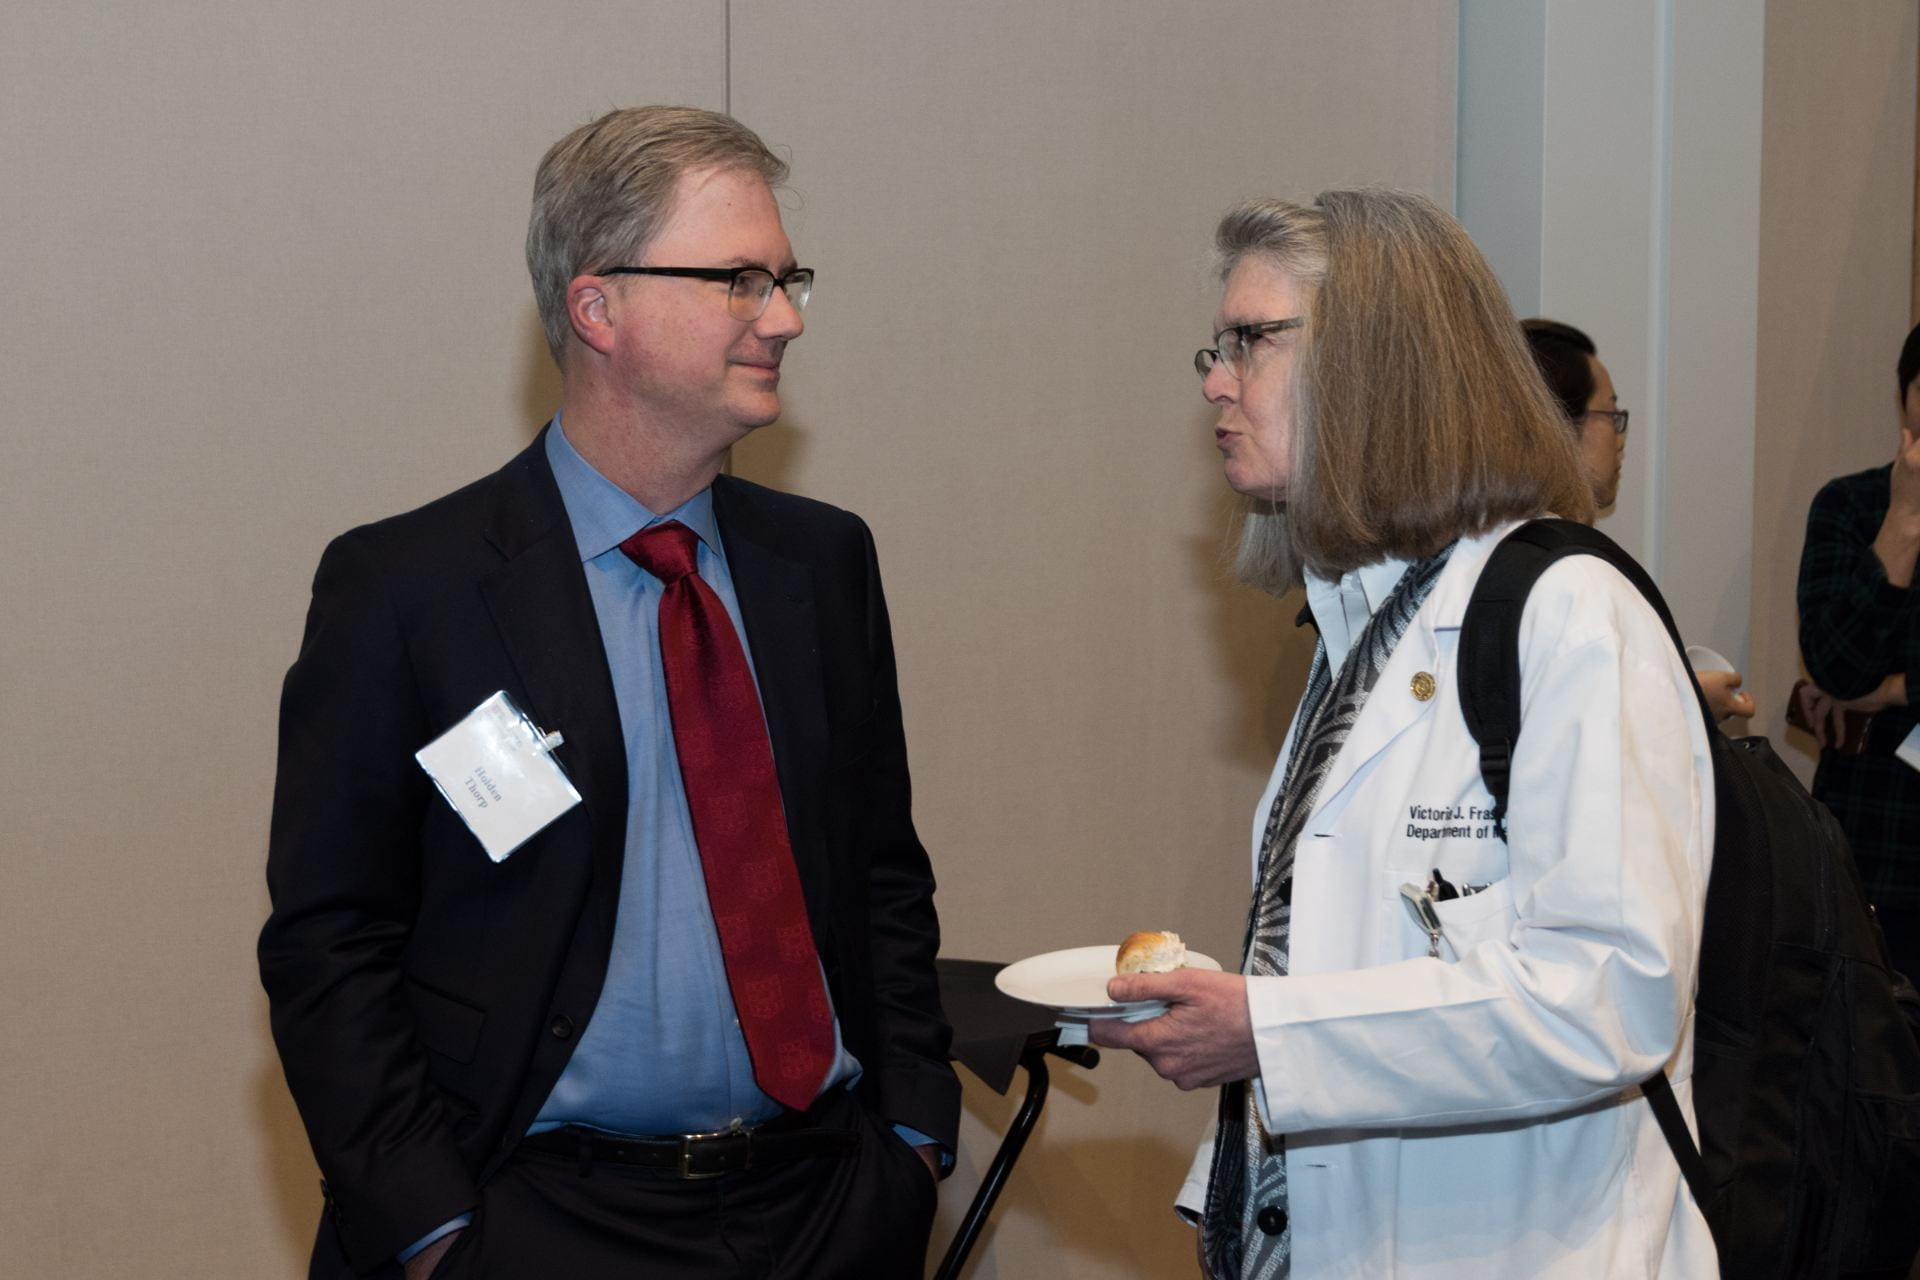 Provost Holden Thorp and Dr. Vicky Fraser